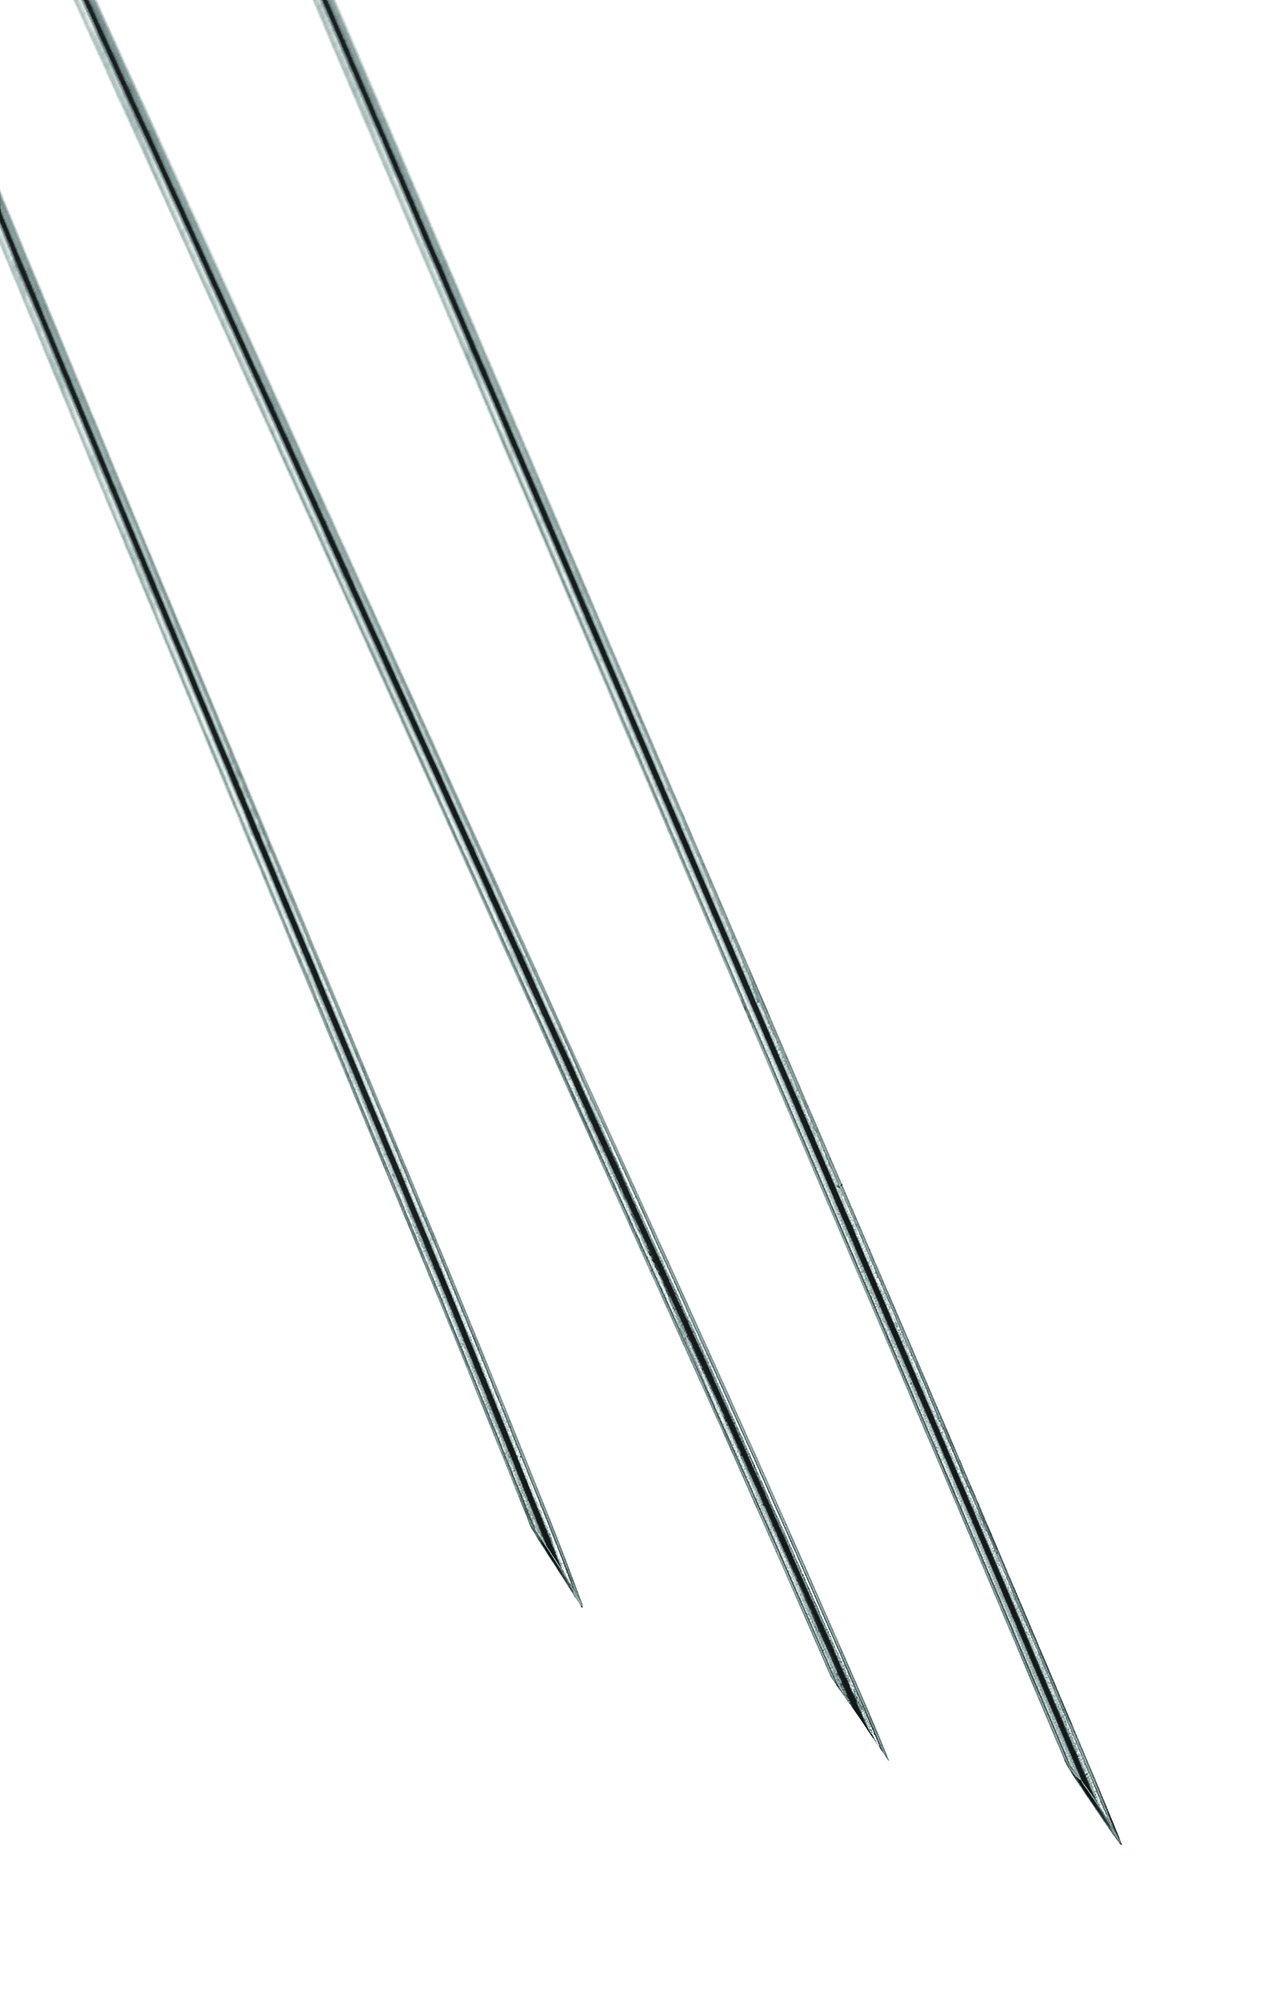 Chemglass AF-0519-01 Stainless Steel Cannula, Airfree, 16 Gauge, 18'' Length,   0.065'' OD,   0.047'' ID, 0.5'' Height (Pack of 3)